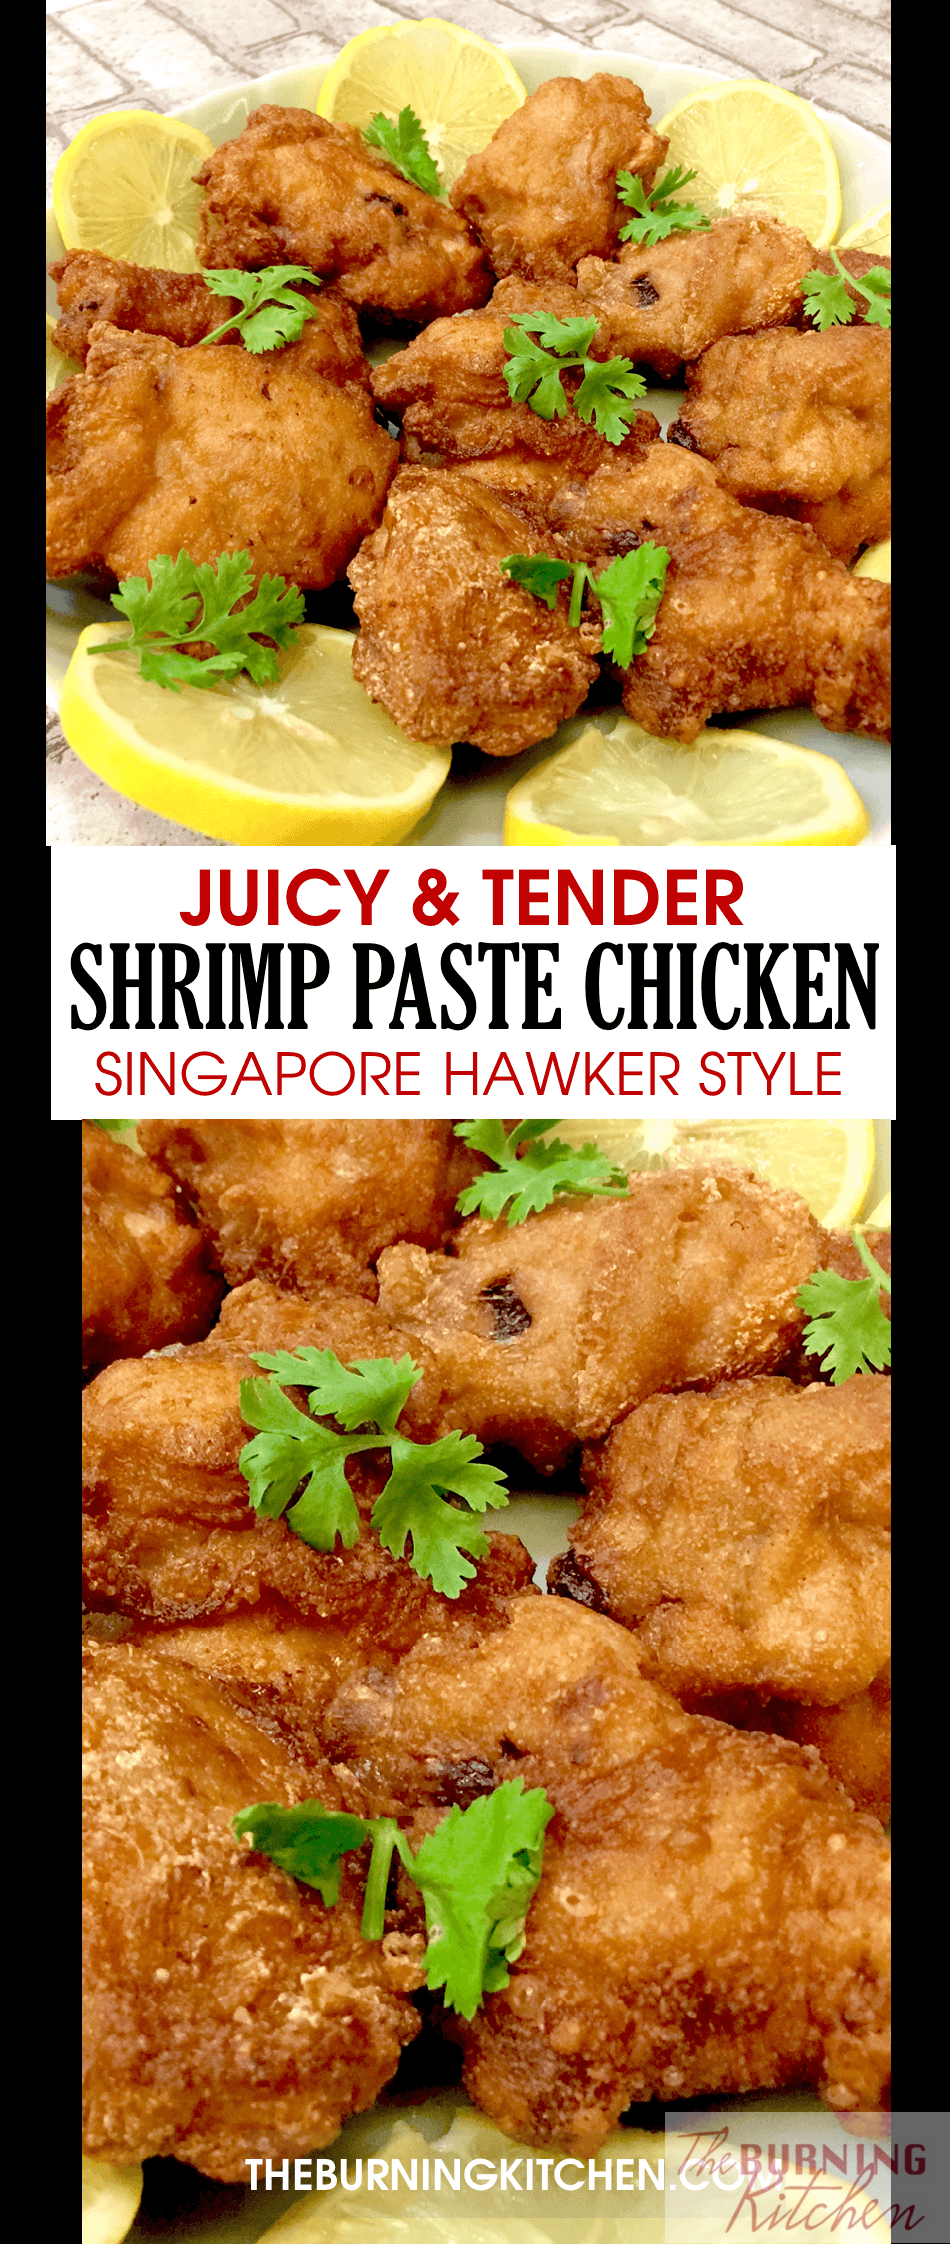 Shrimp Paste Chicken, or 'Har Cheong Gai', is one of Singapore's most beloved dishes that you can find. Crispy on the outside and succulent on the inside, this umami-packed chicken wing is sure to win you over, so learn how to make it!#harcheonggai #shrimppastechicken #czecharfav